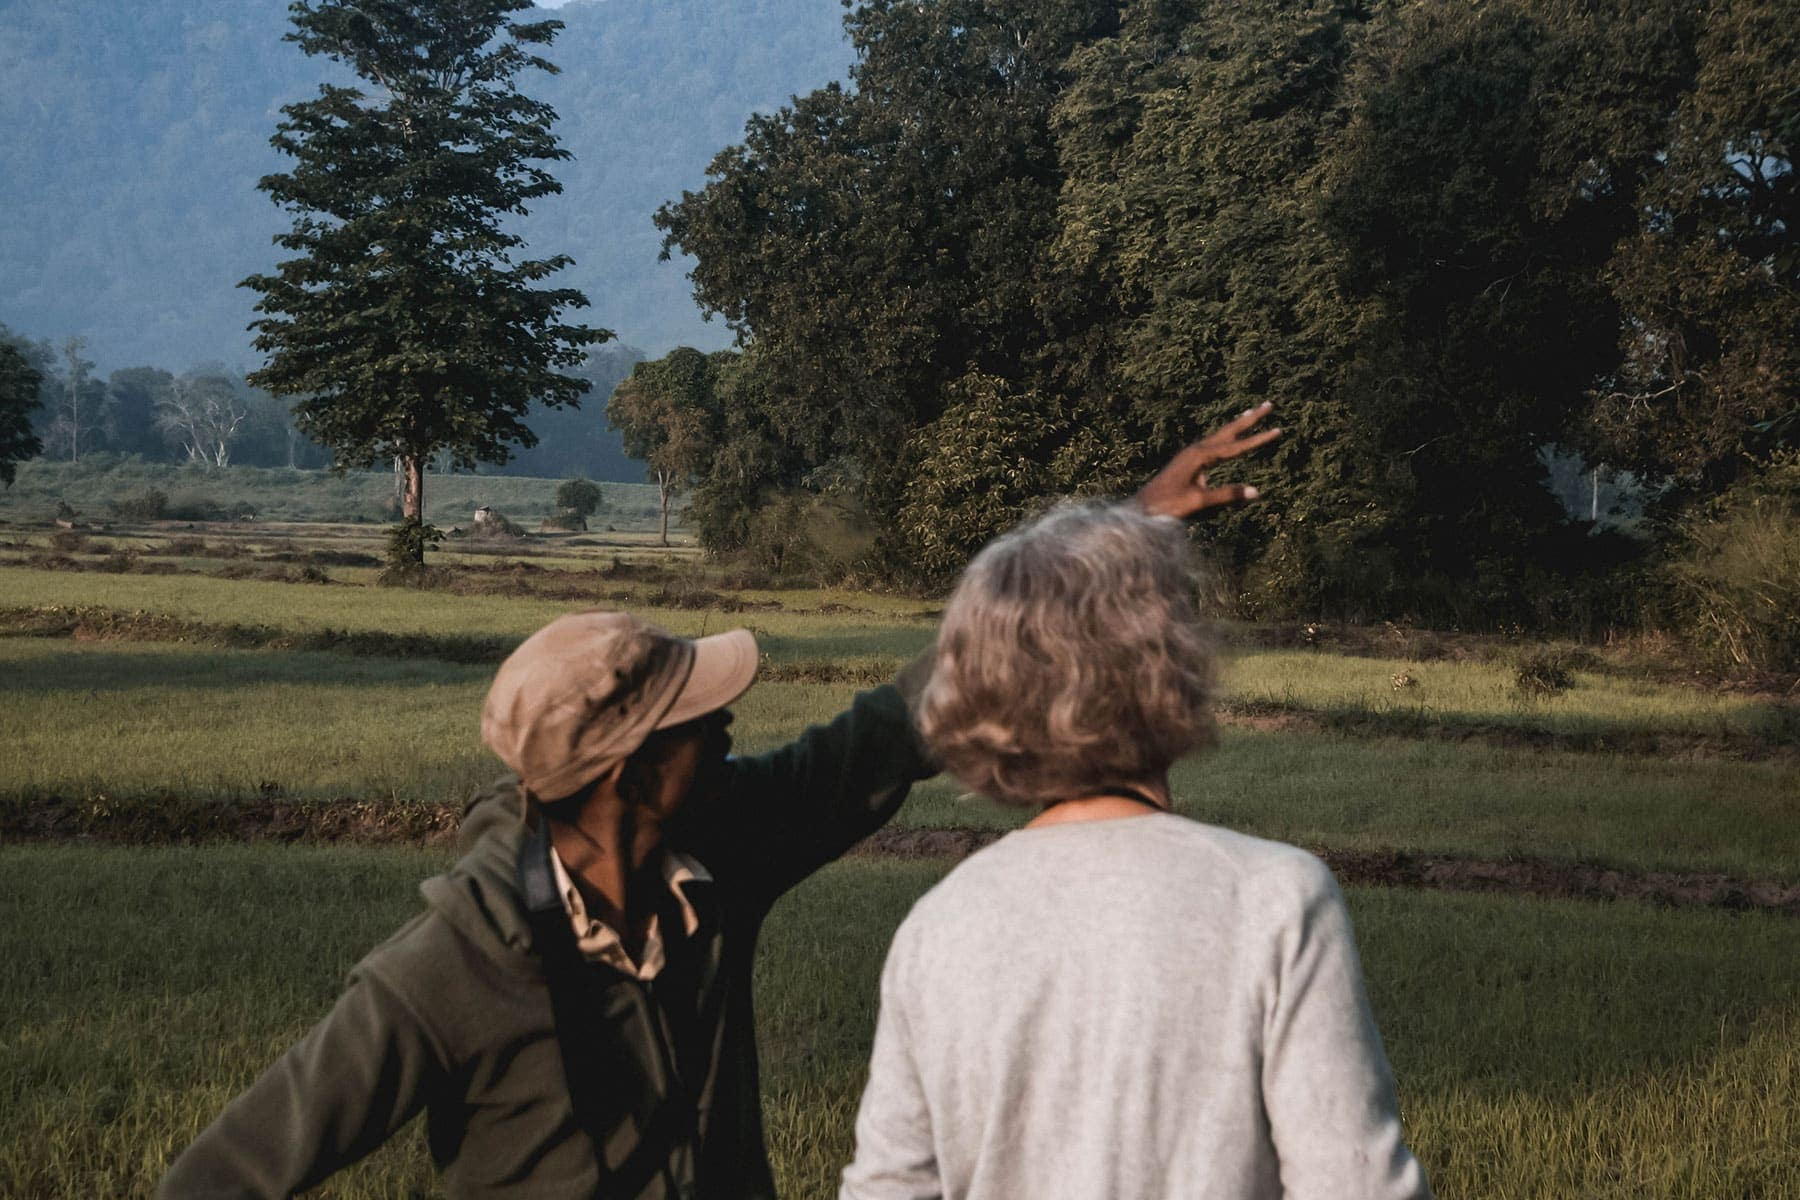 Woman talking to wildlife guide pointing at trees on safari in India